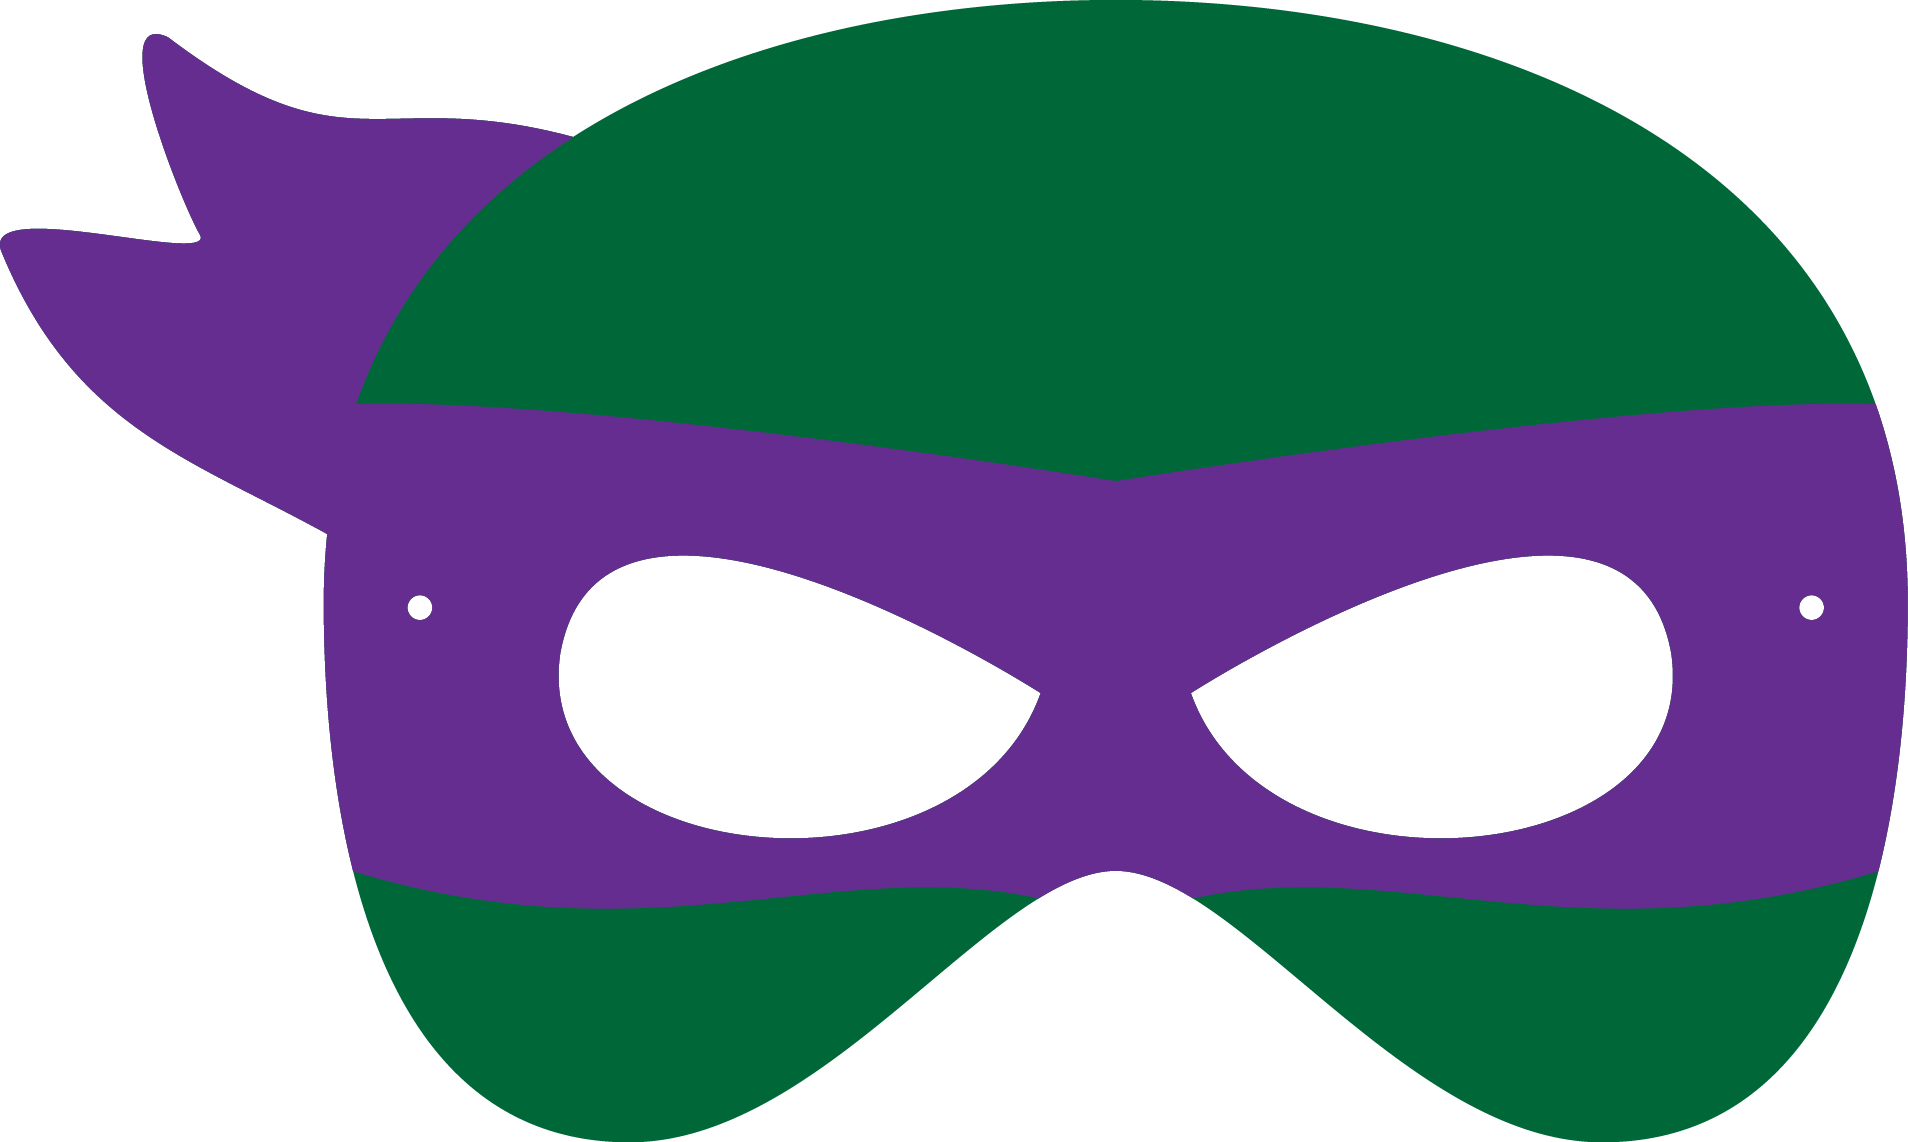 Irresistible image pertaining to ninja turtle printable mask